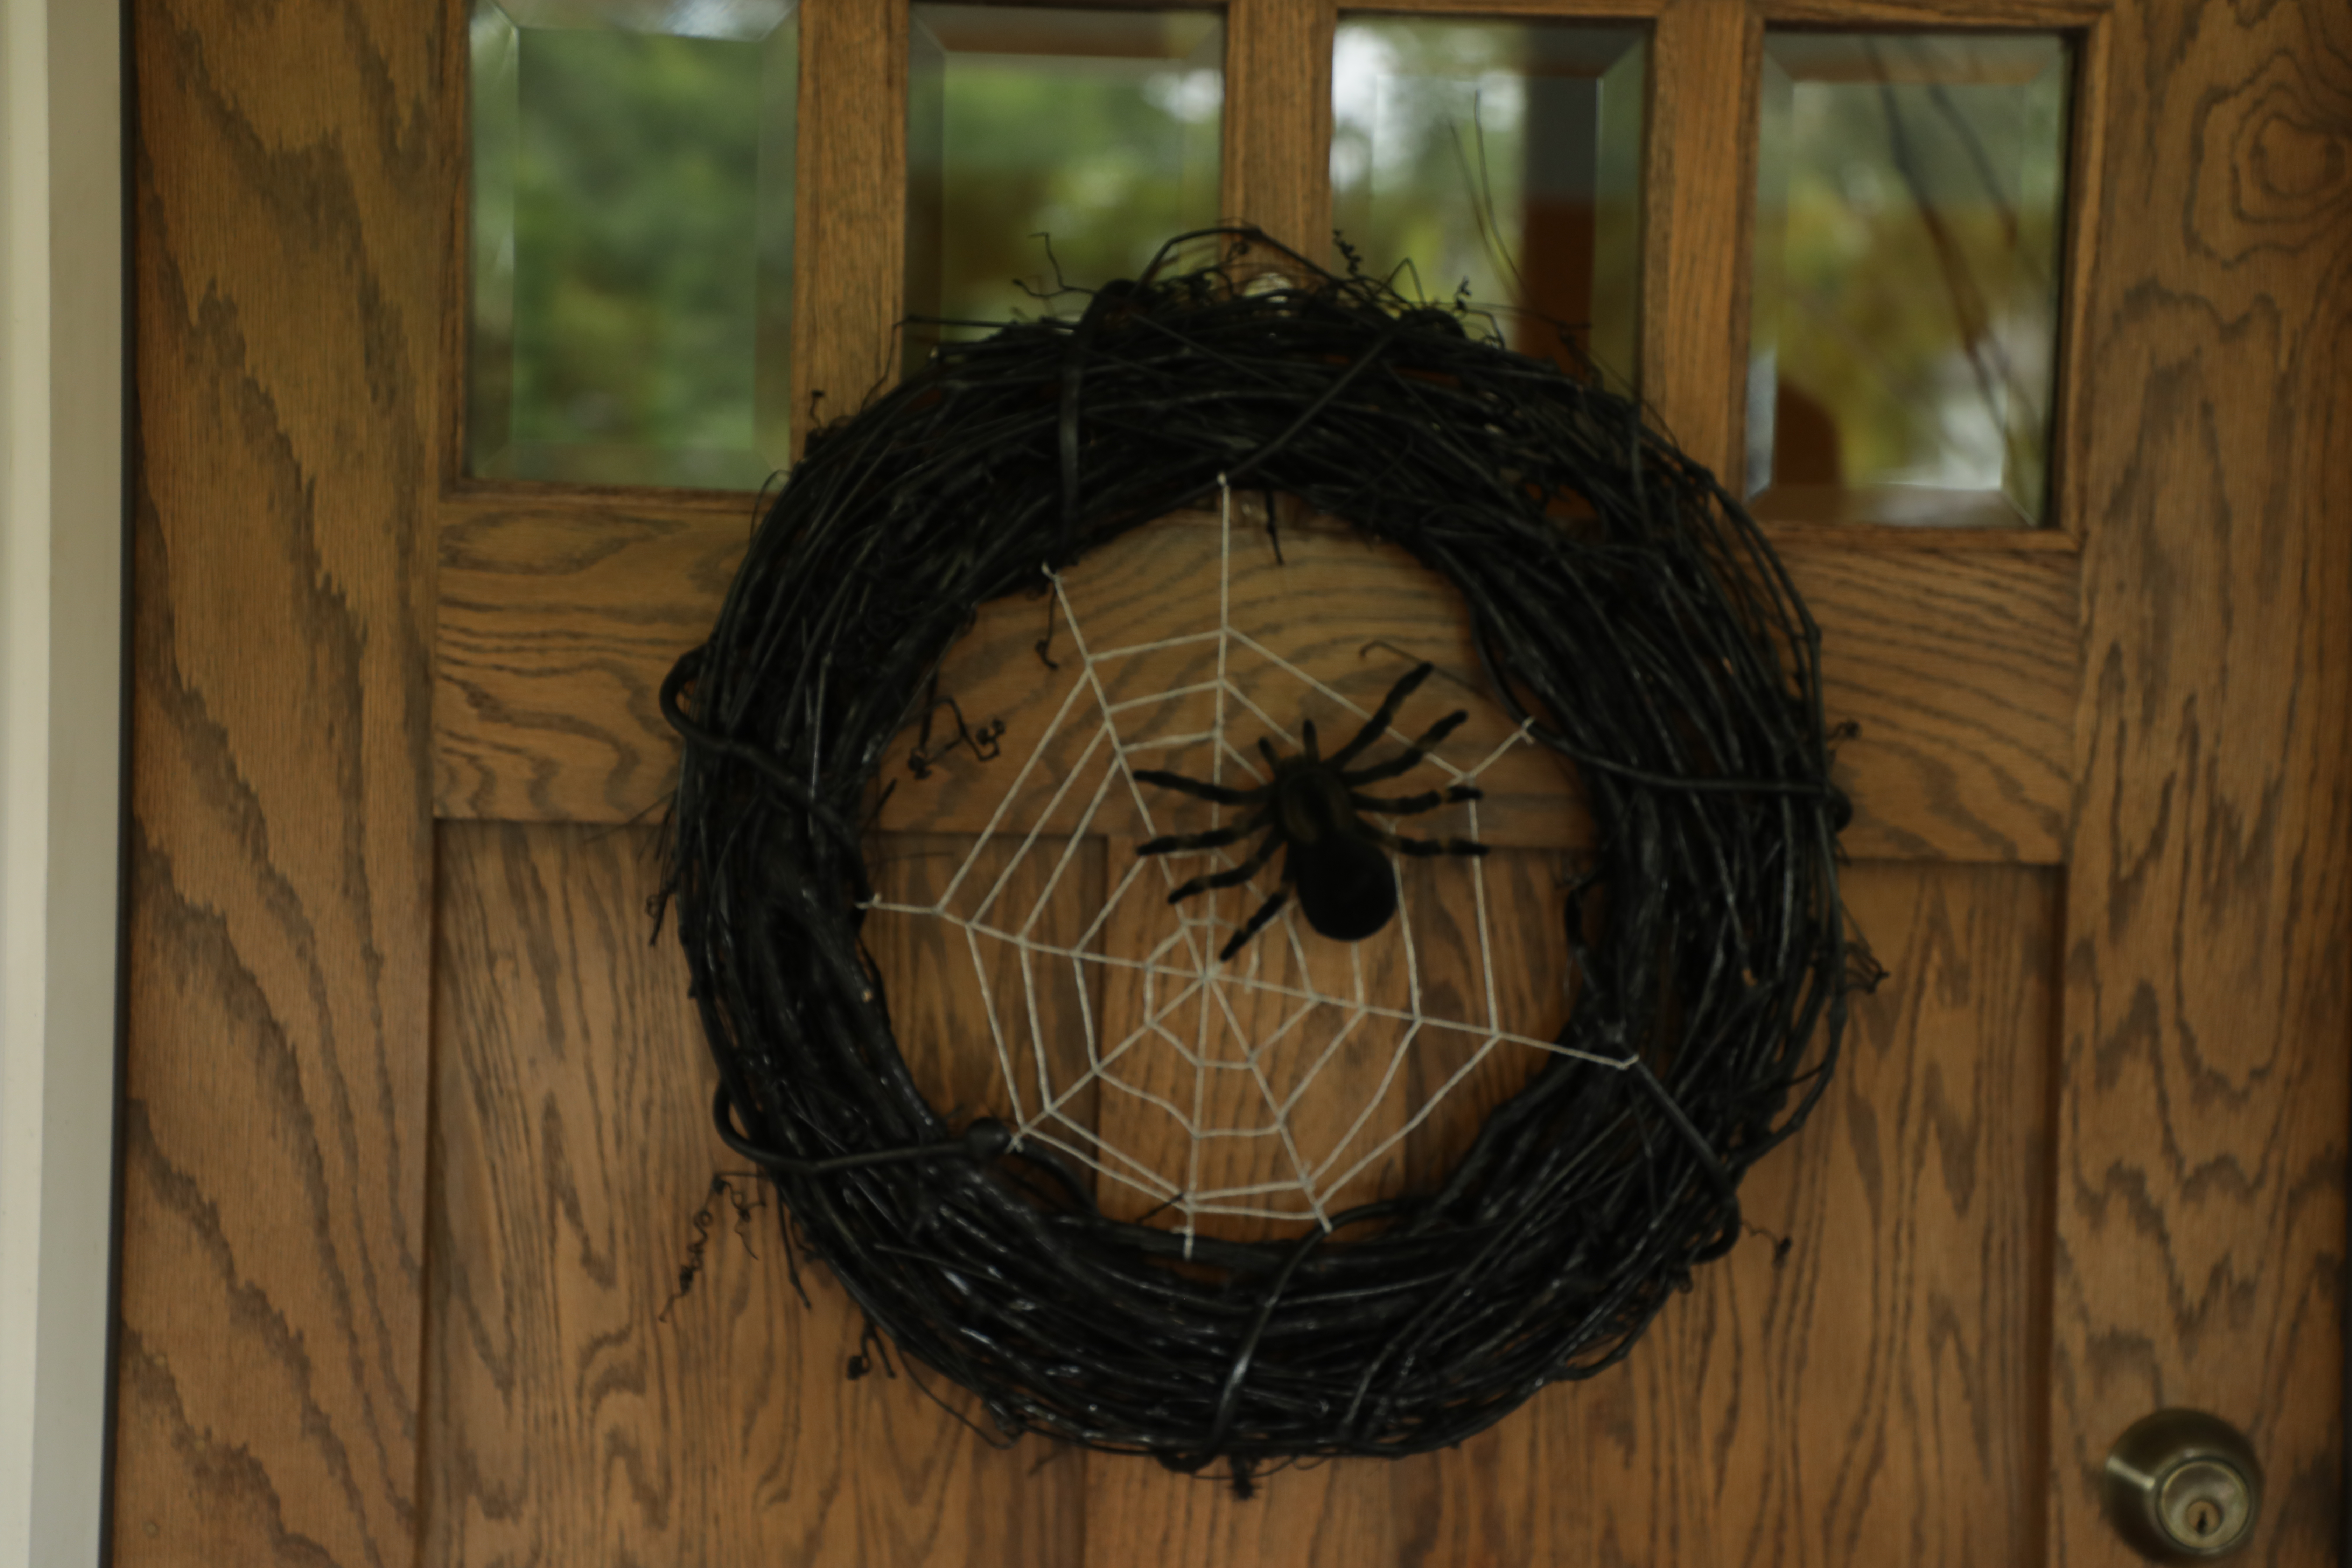 How to Make a Spider Halloween Wreath